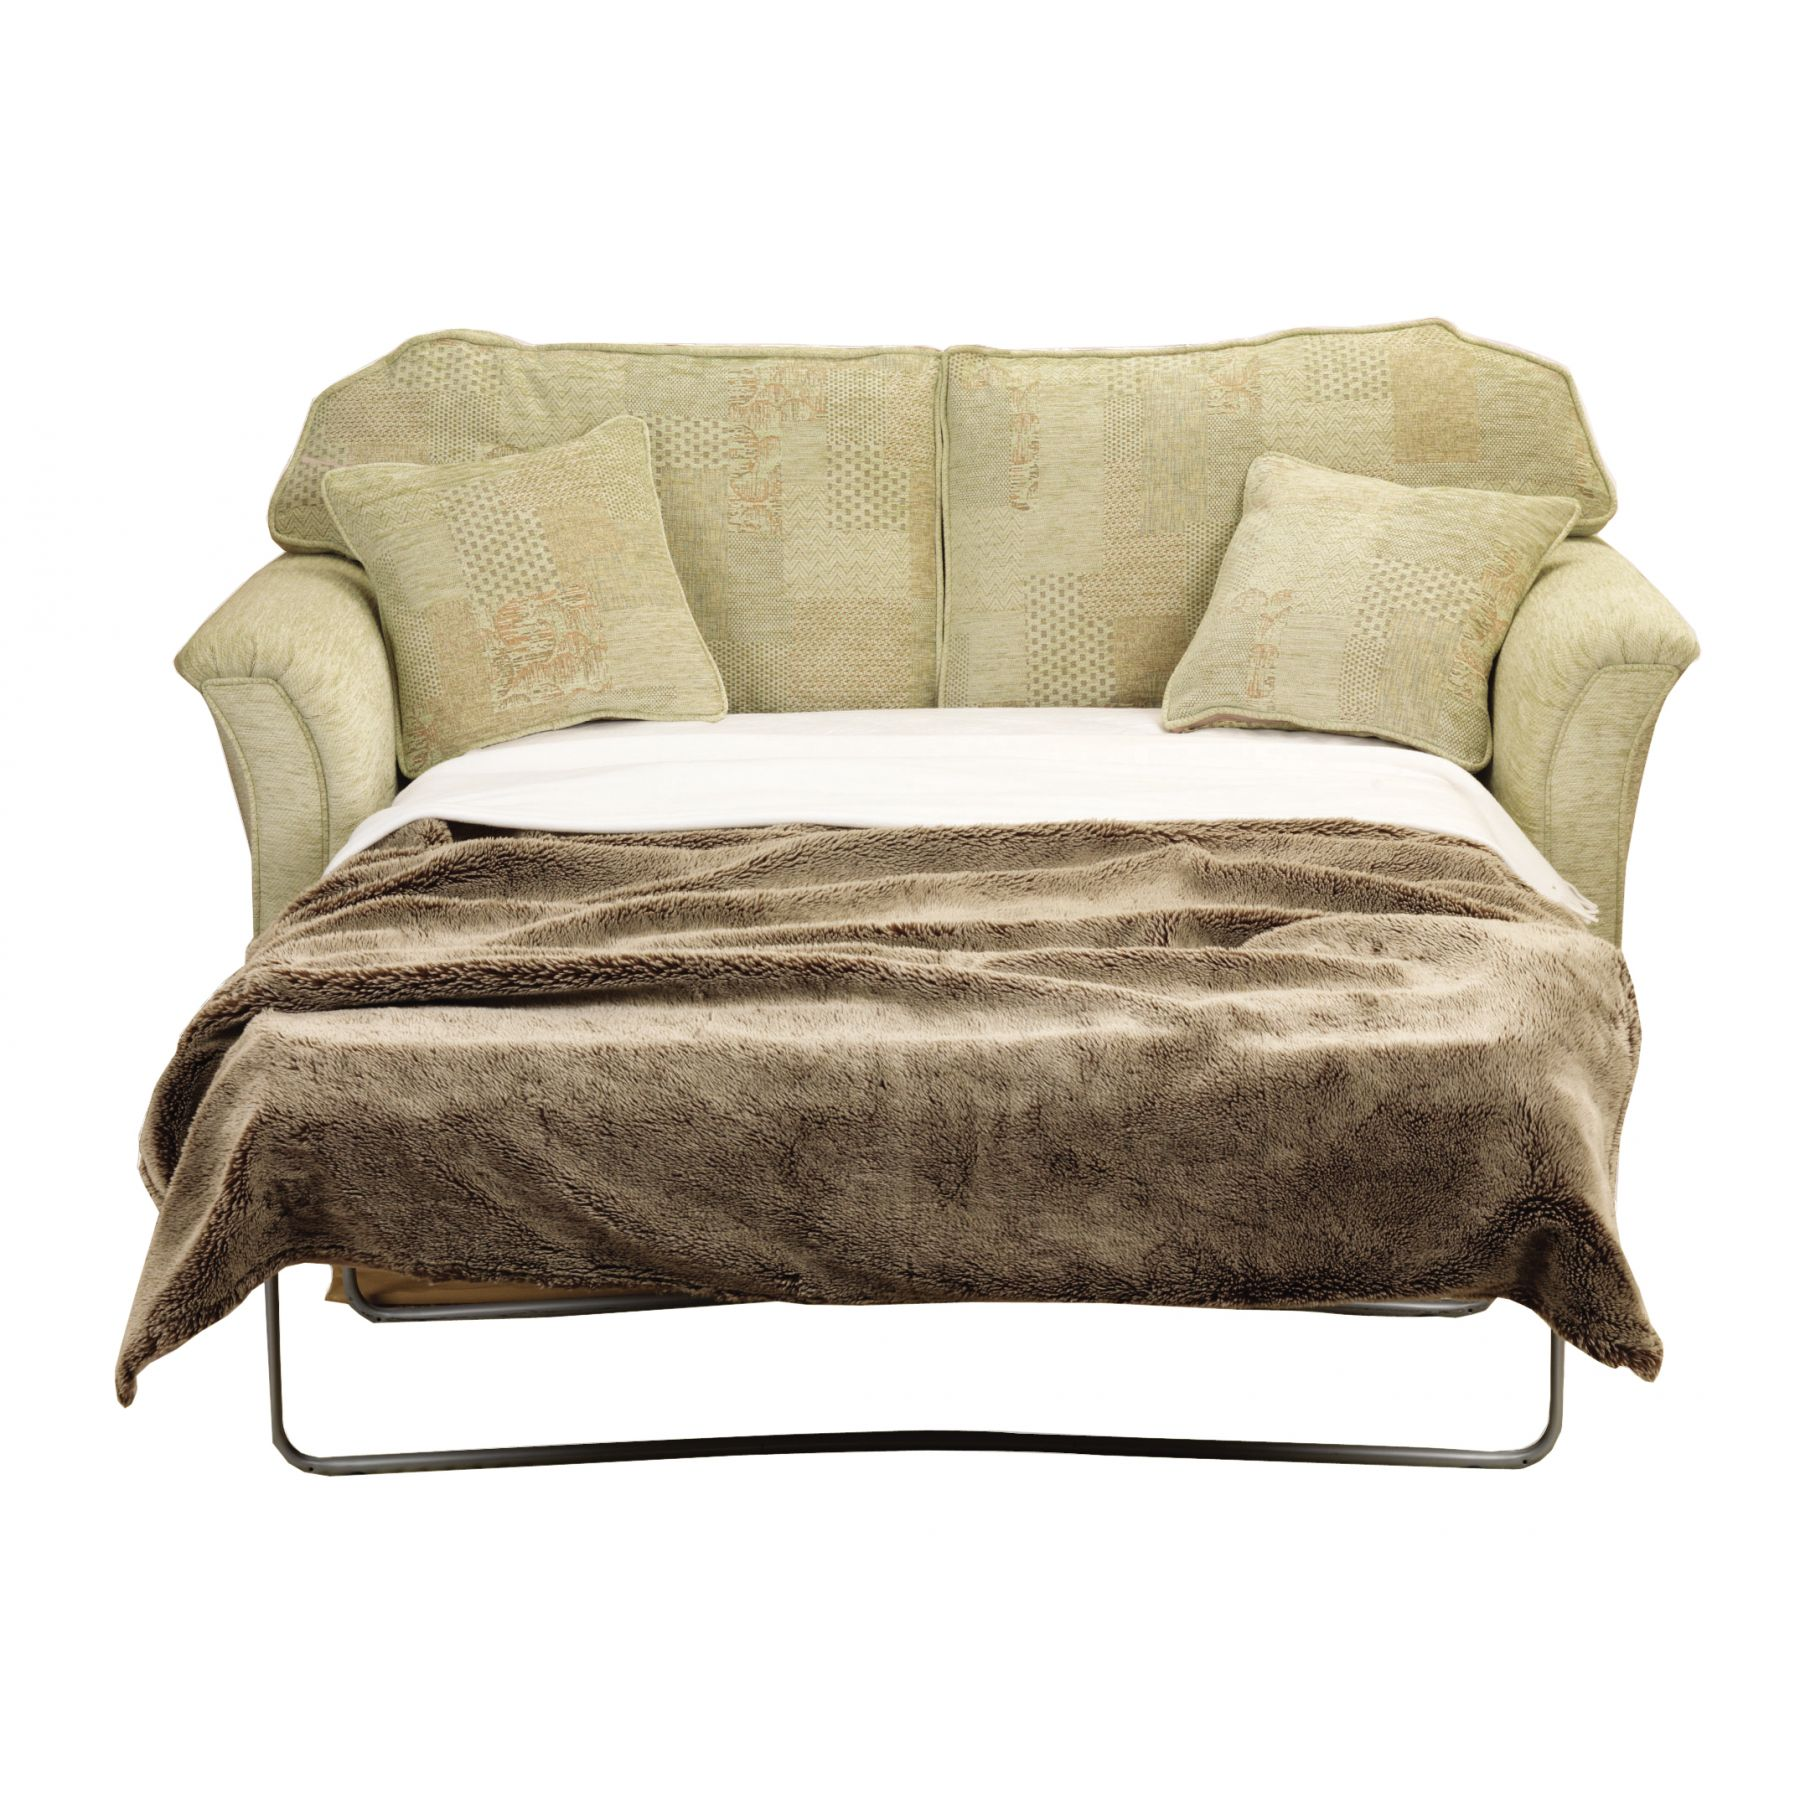 beds and sofas leather sofa outlet lewisville convertible loveseat bed with chaise couch